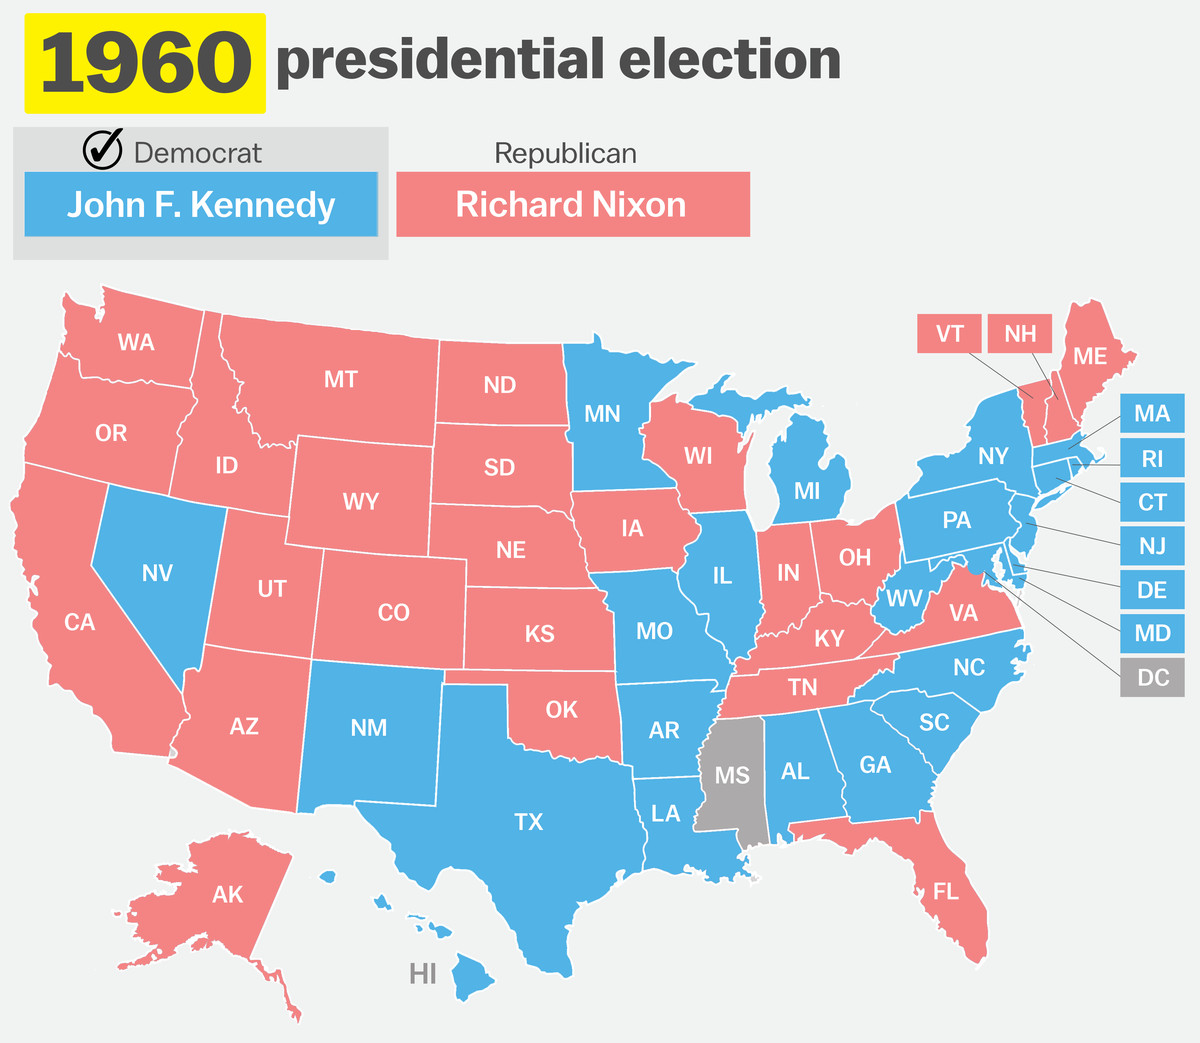 in a very close election john f kennedy edged out richard nixon by a mere 112 827 votes though nixon won more states 26 to 22 kennedy triumphed in